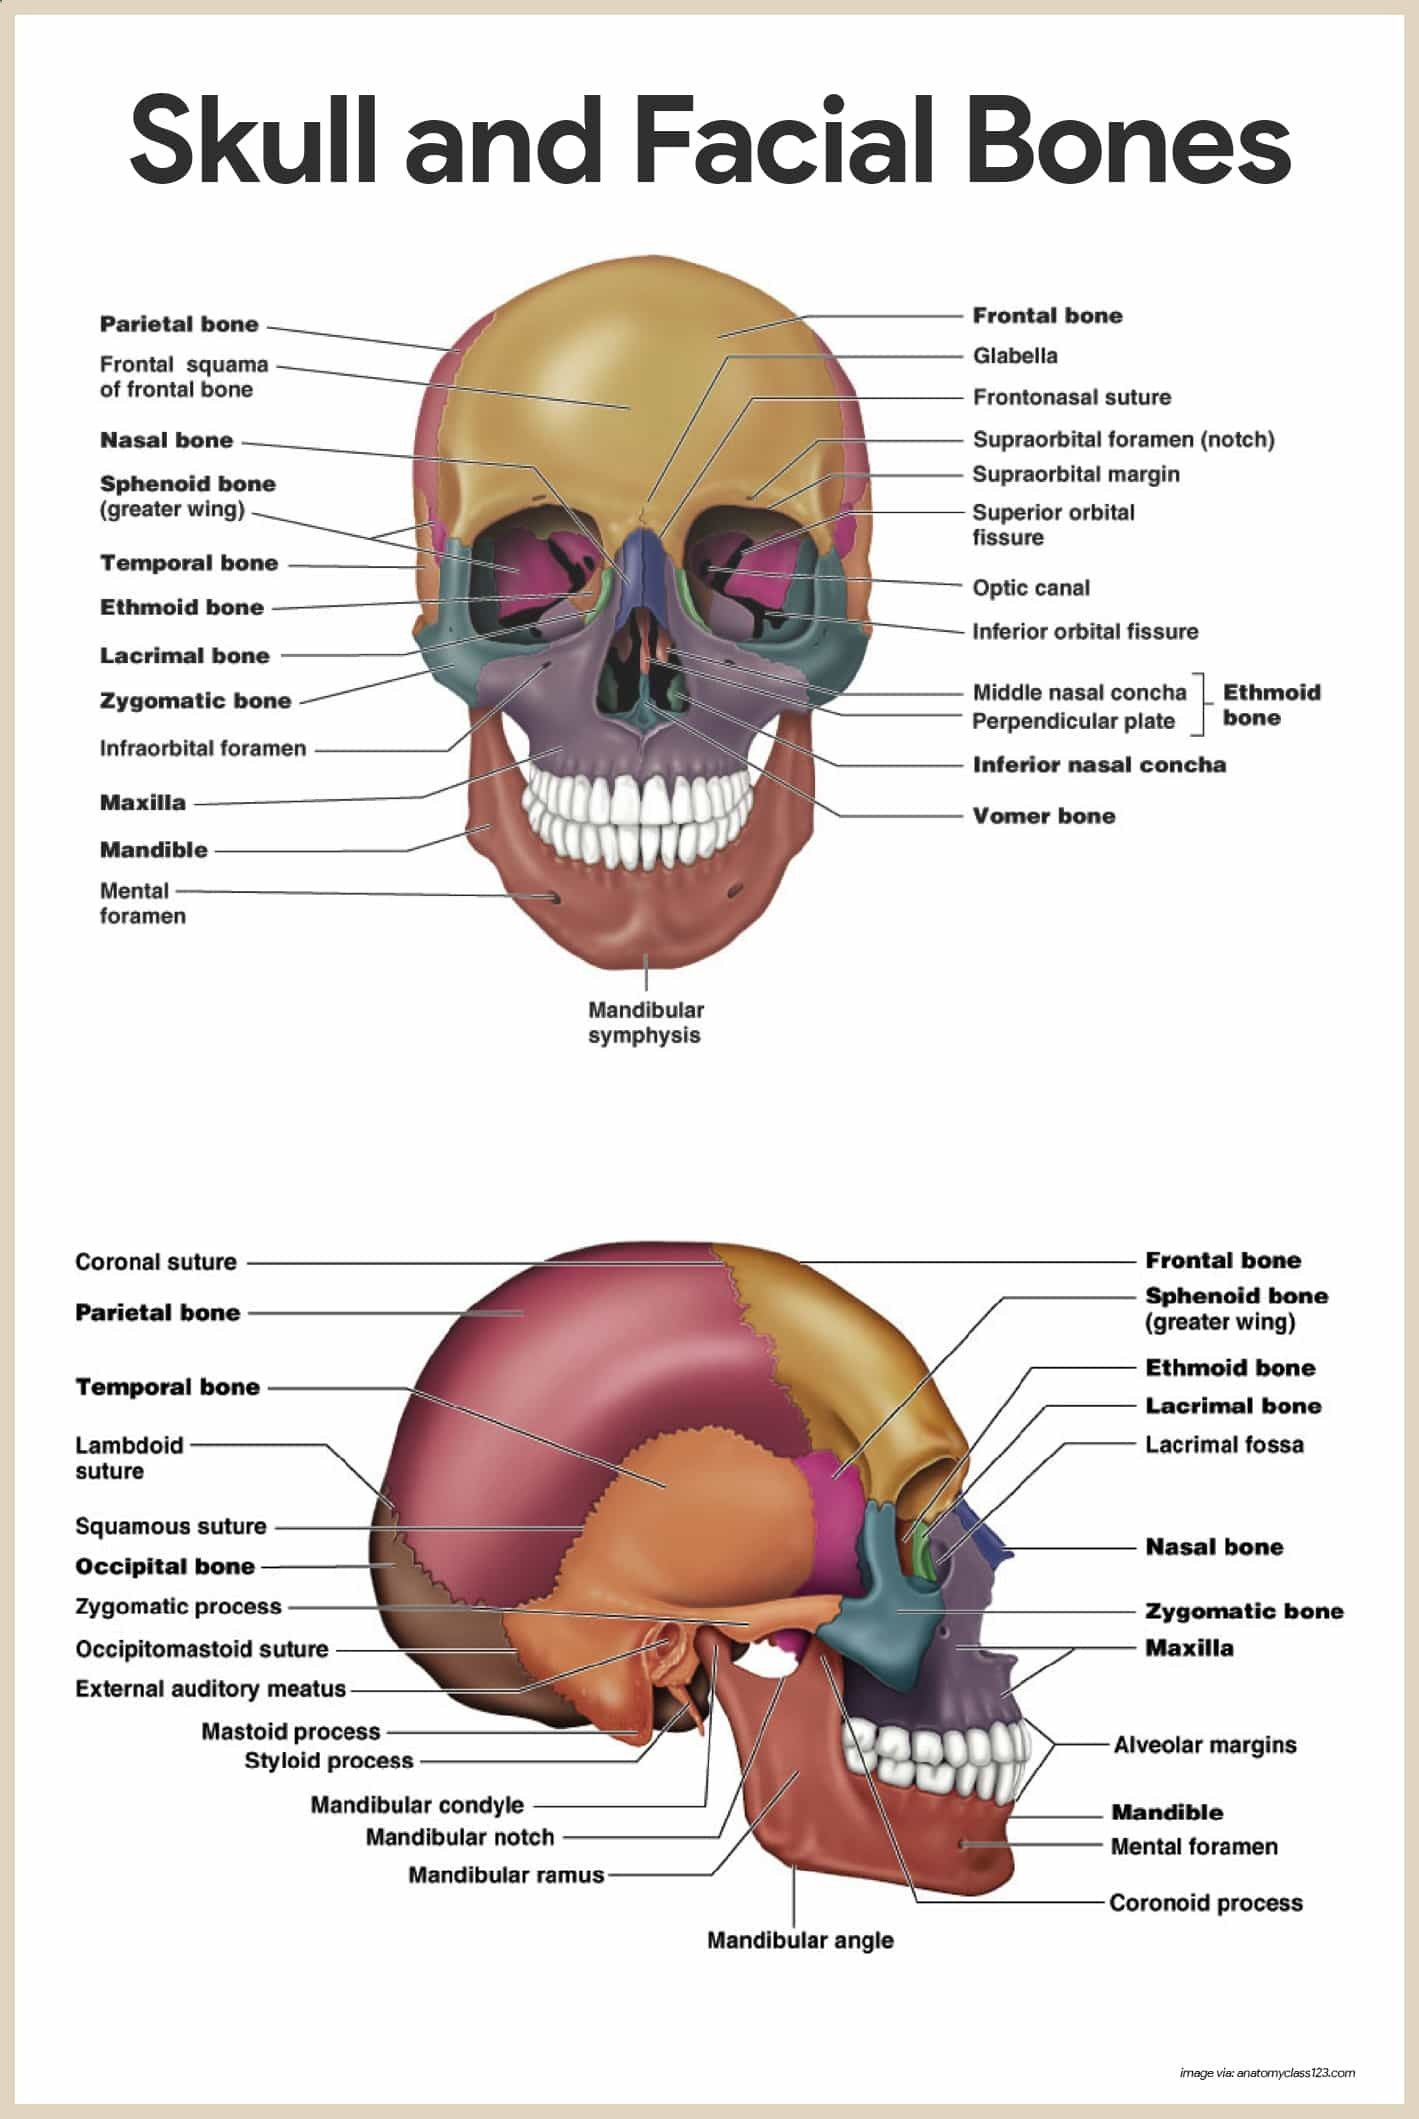 Skull and Facial Bones-Skeletal System Anatomy and Physiology for ...